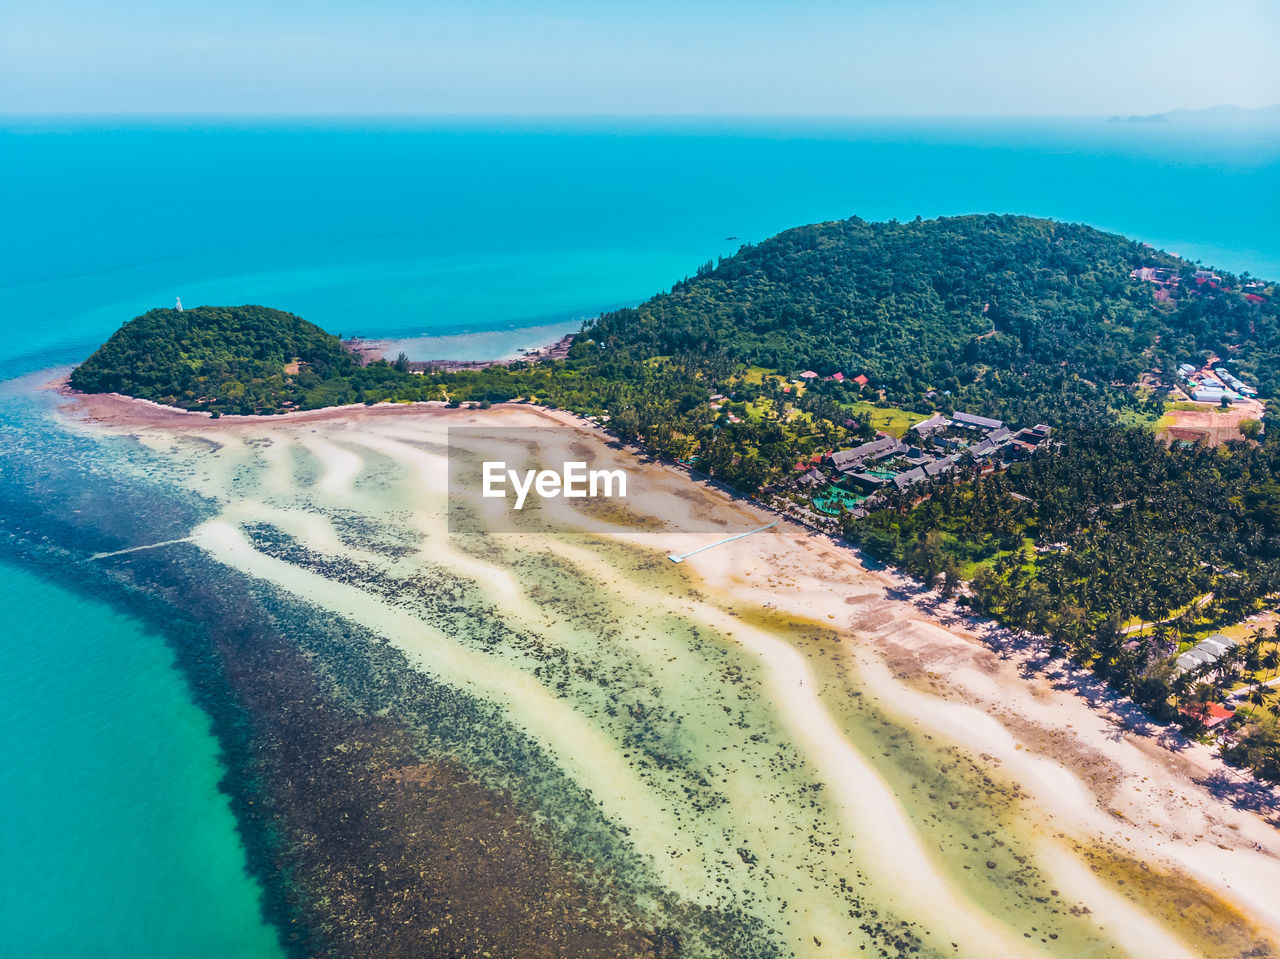 sea, water, beach, land, scenics - nature, sky, beauty in nature, nature, plant, day, no people, aerial view, sand, tranquility, tranquil scene, coastline, tree, outdoors, green color, bay